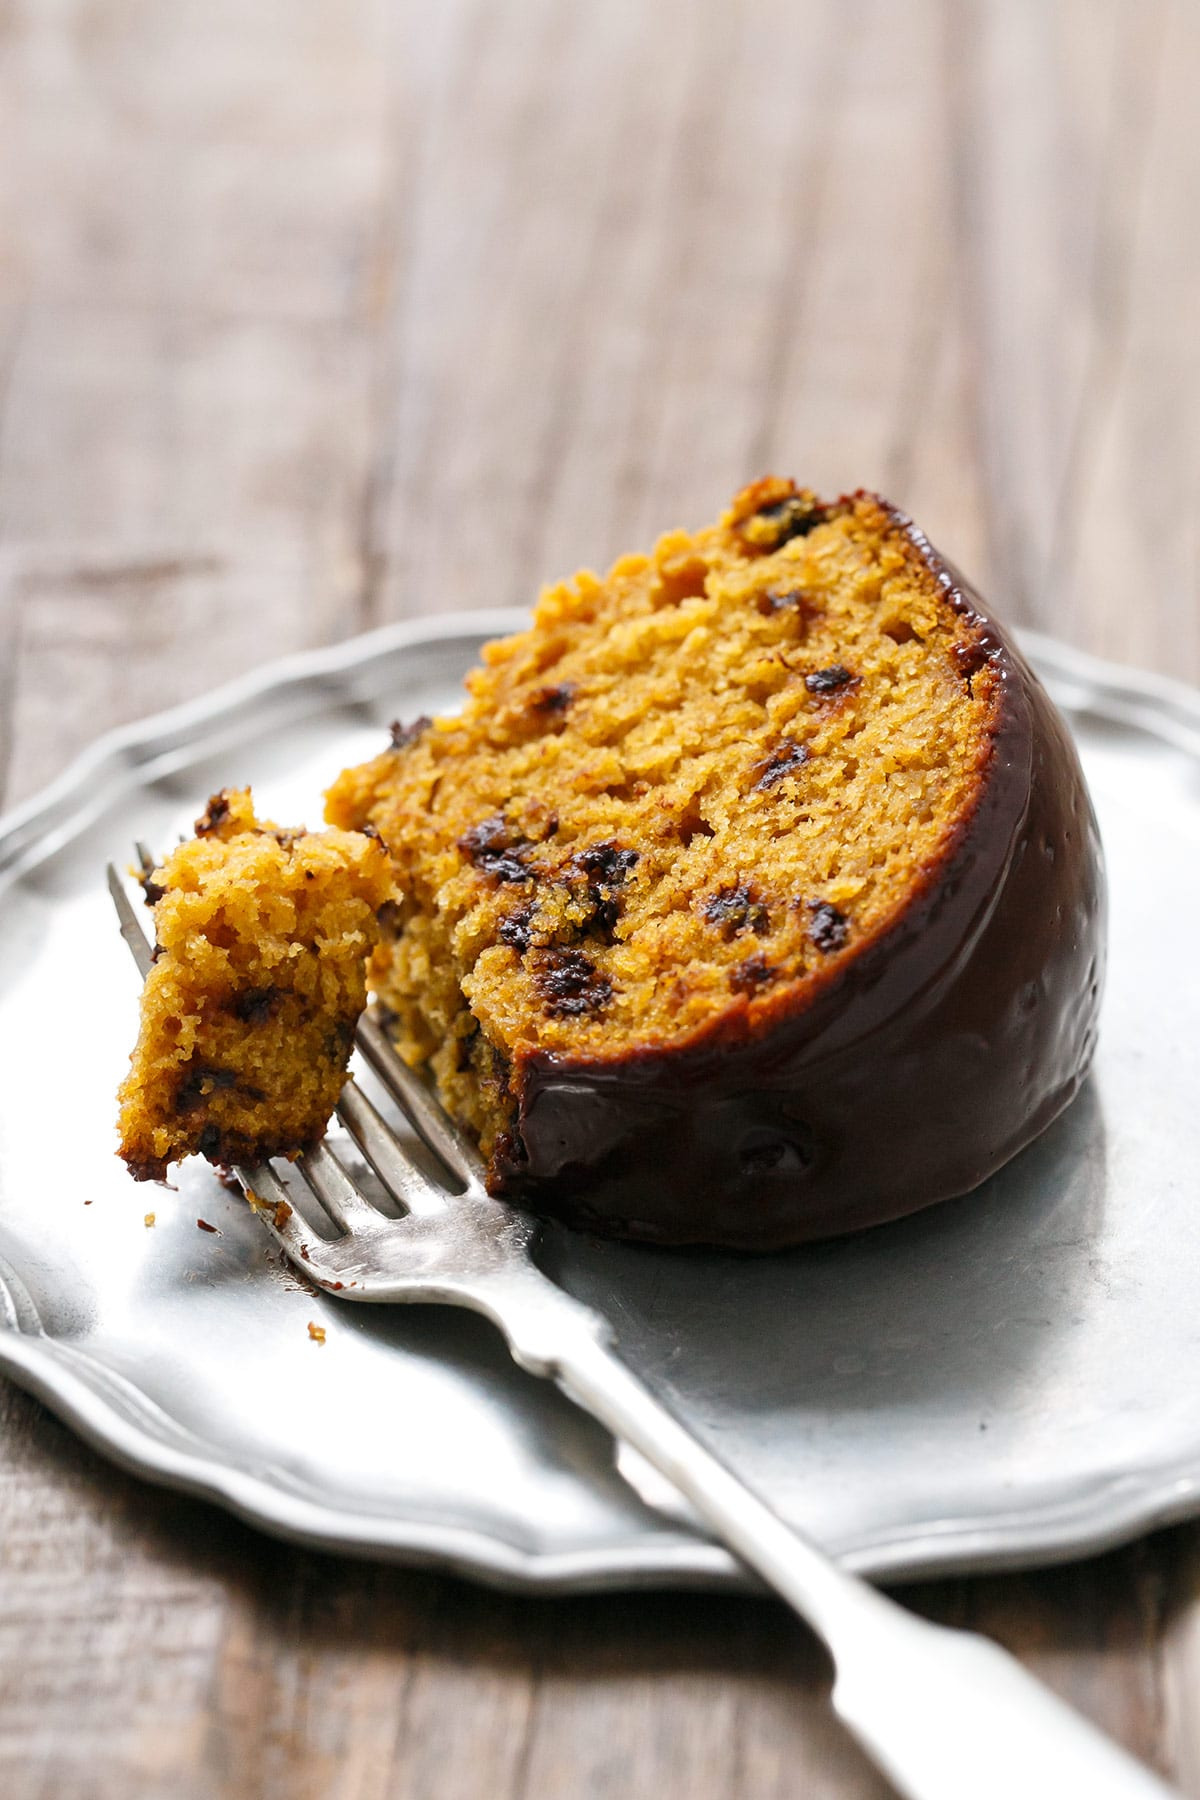 Gluten Free Pumpkin Chocolate Chip Bundt Cake